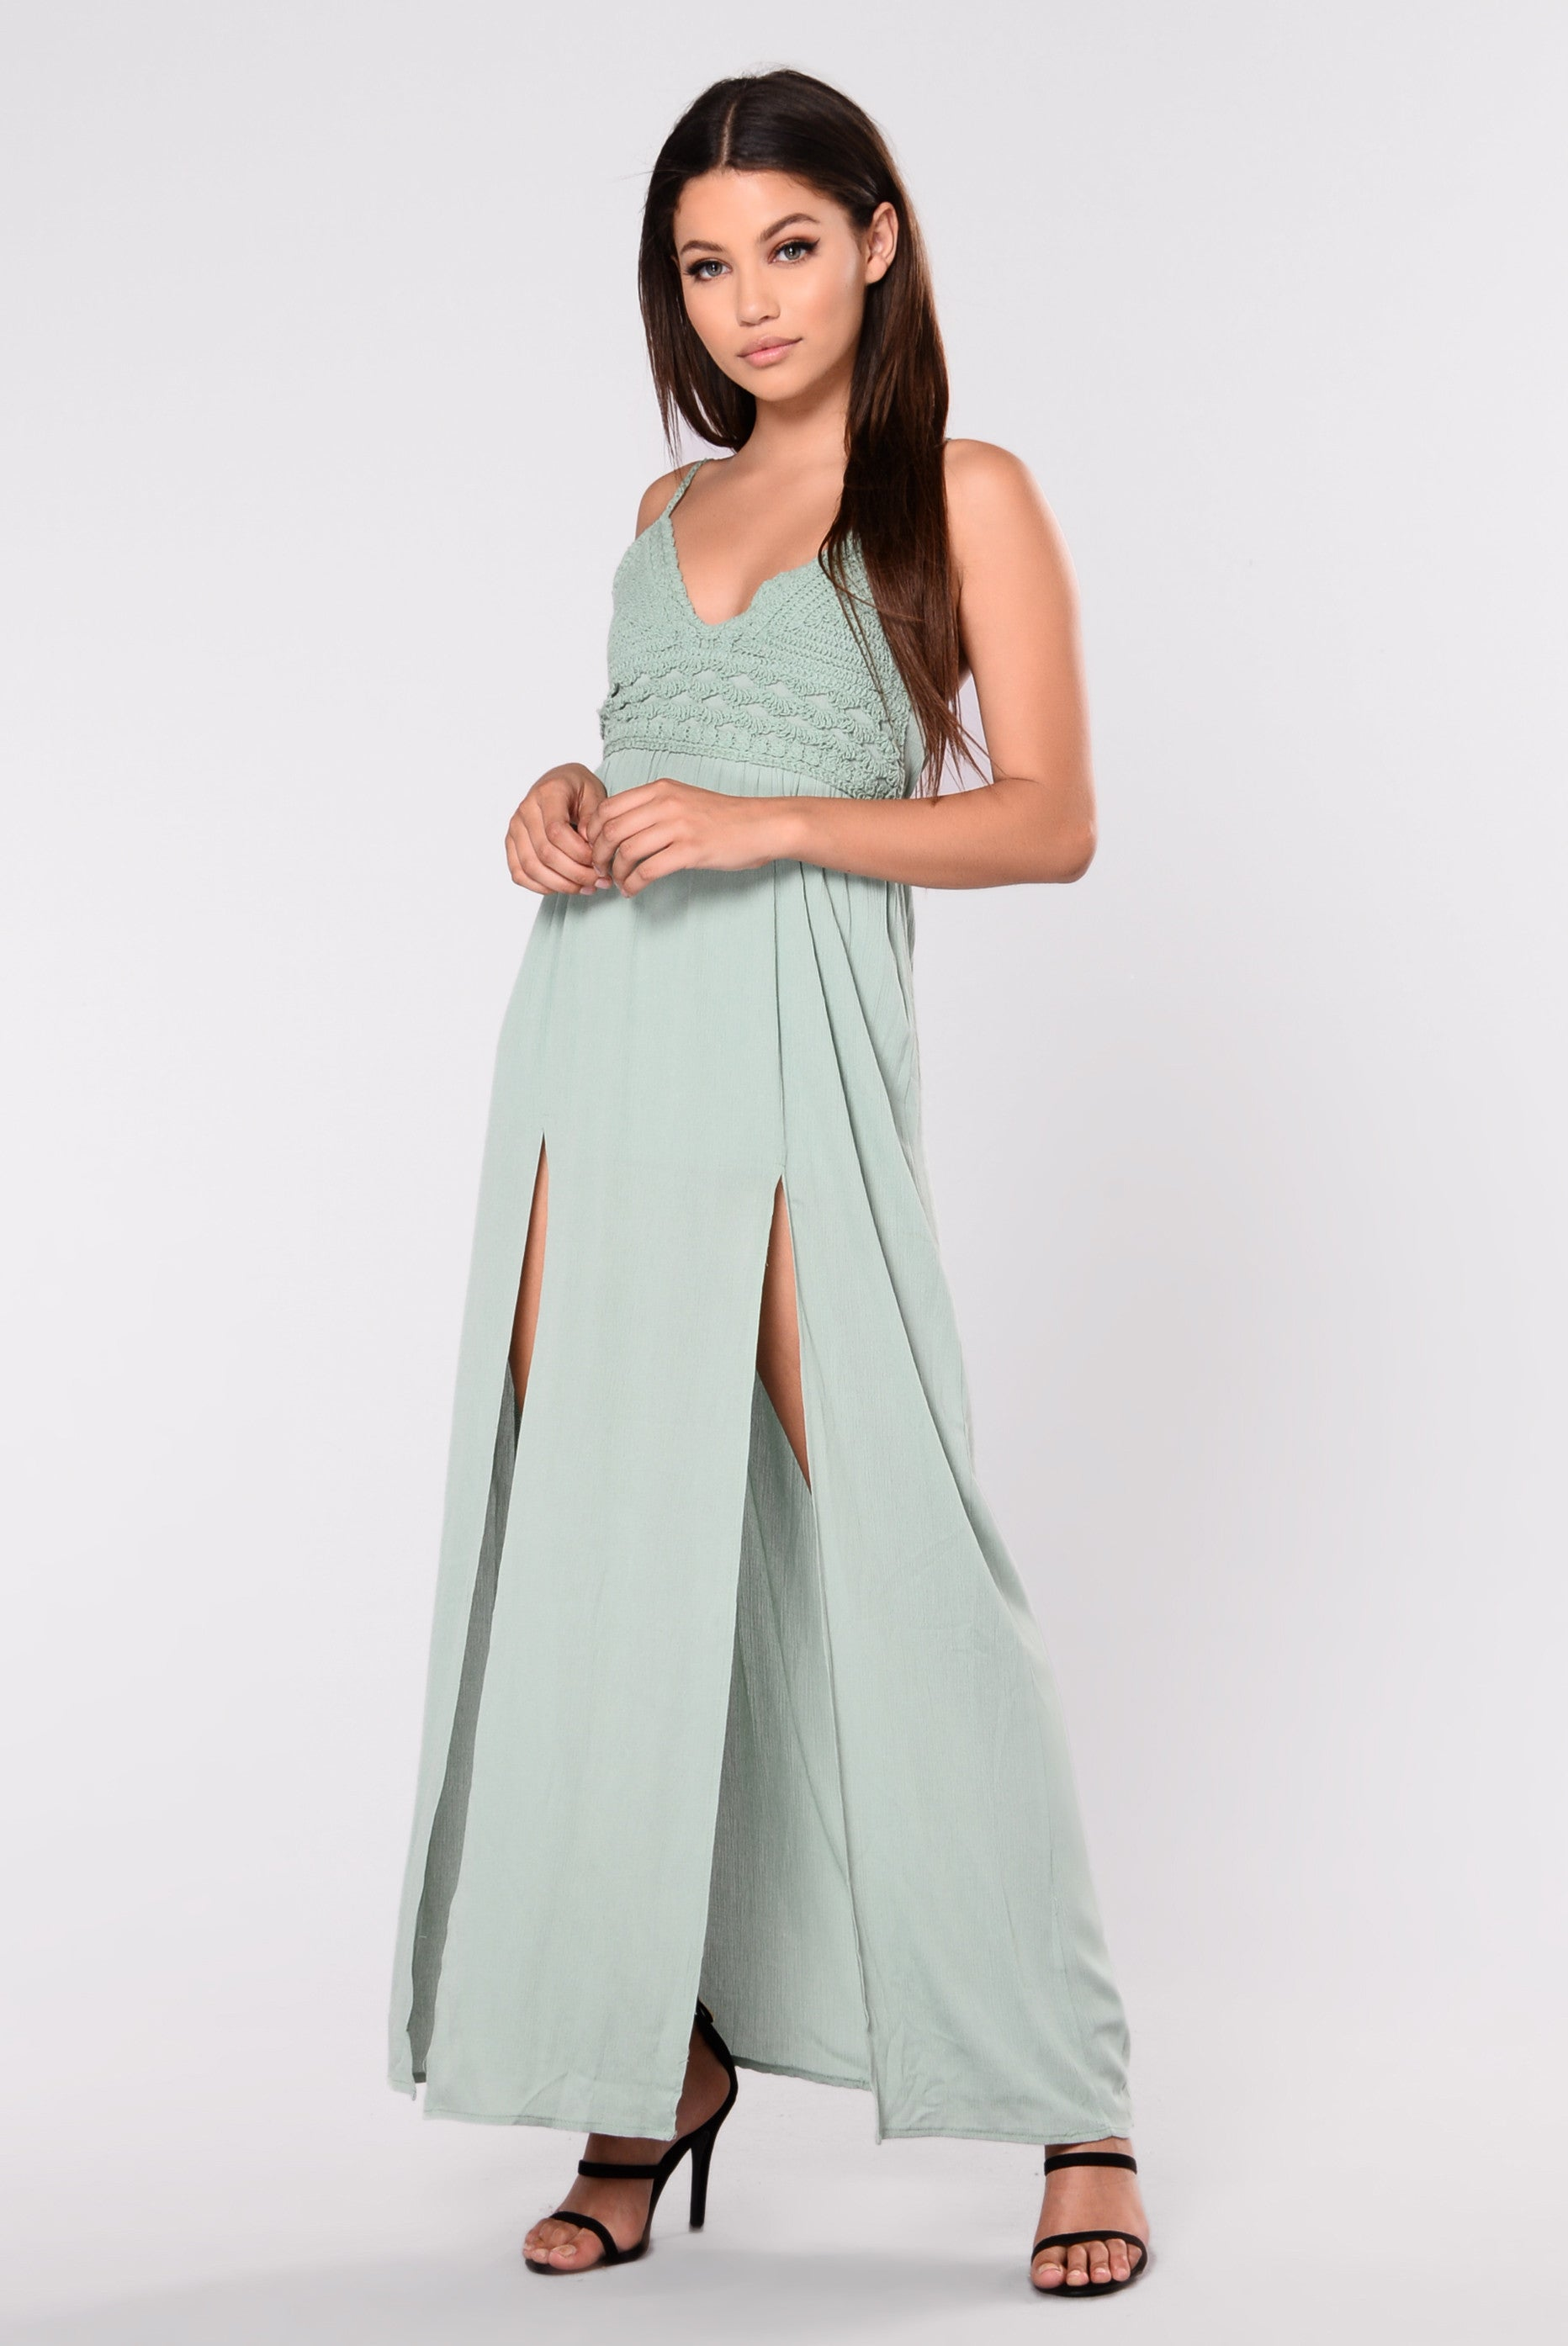 Flamenco Maxi Dress Olive